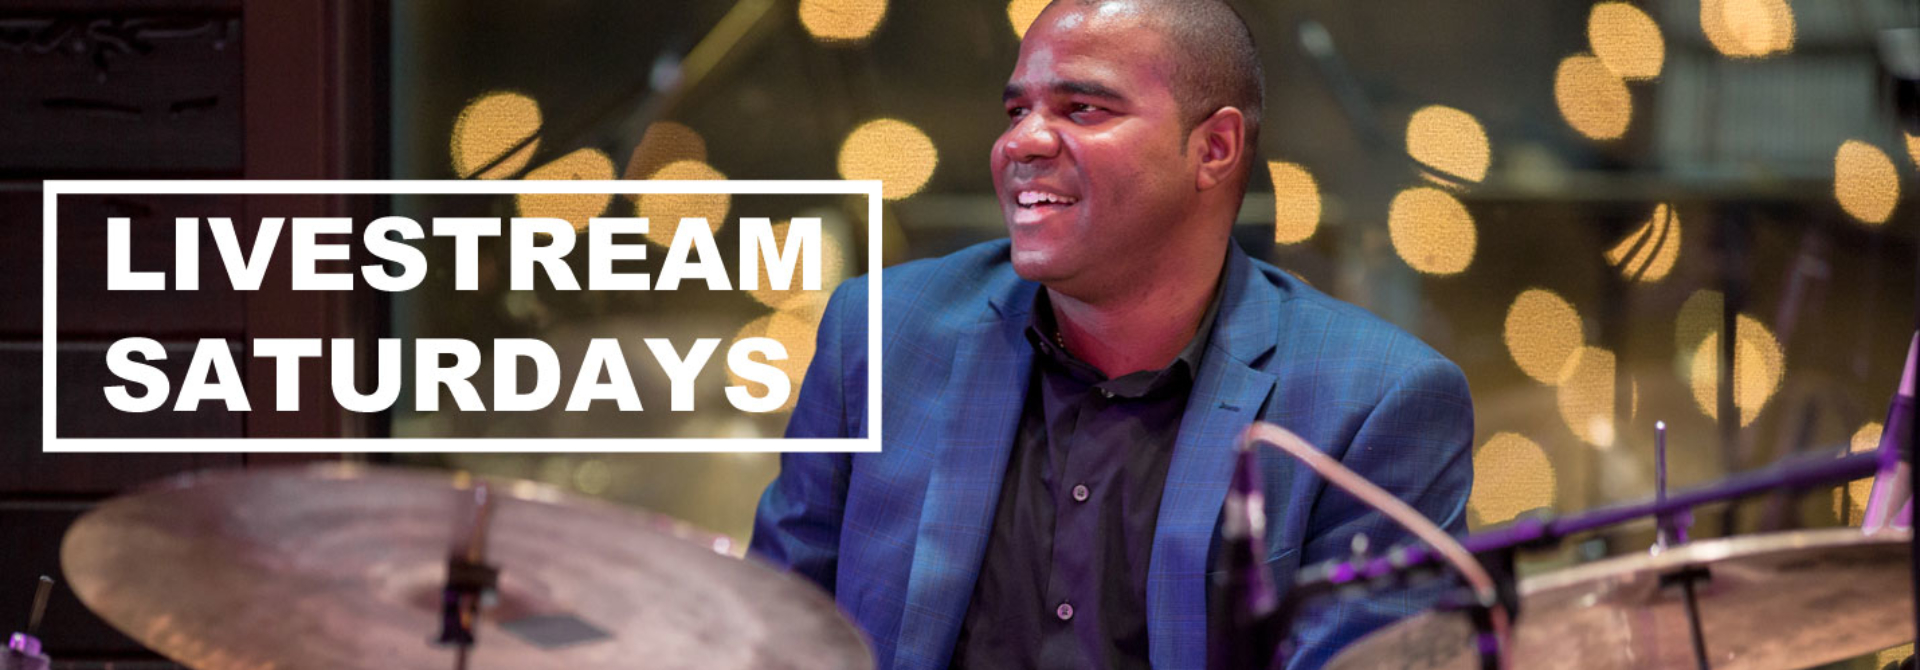 D'Vonne Lewis playing drums and smiling